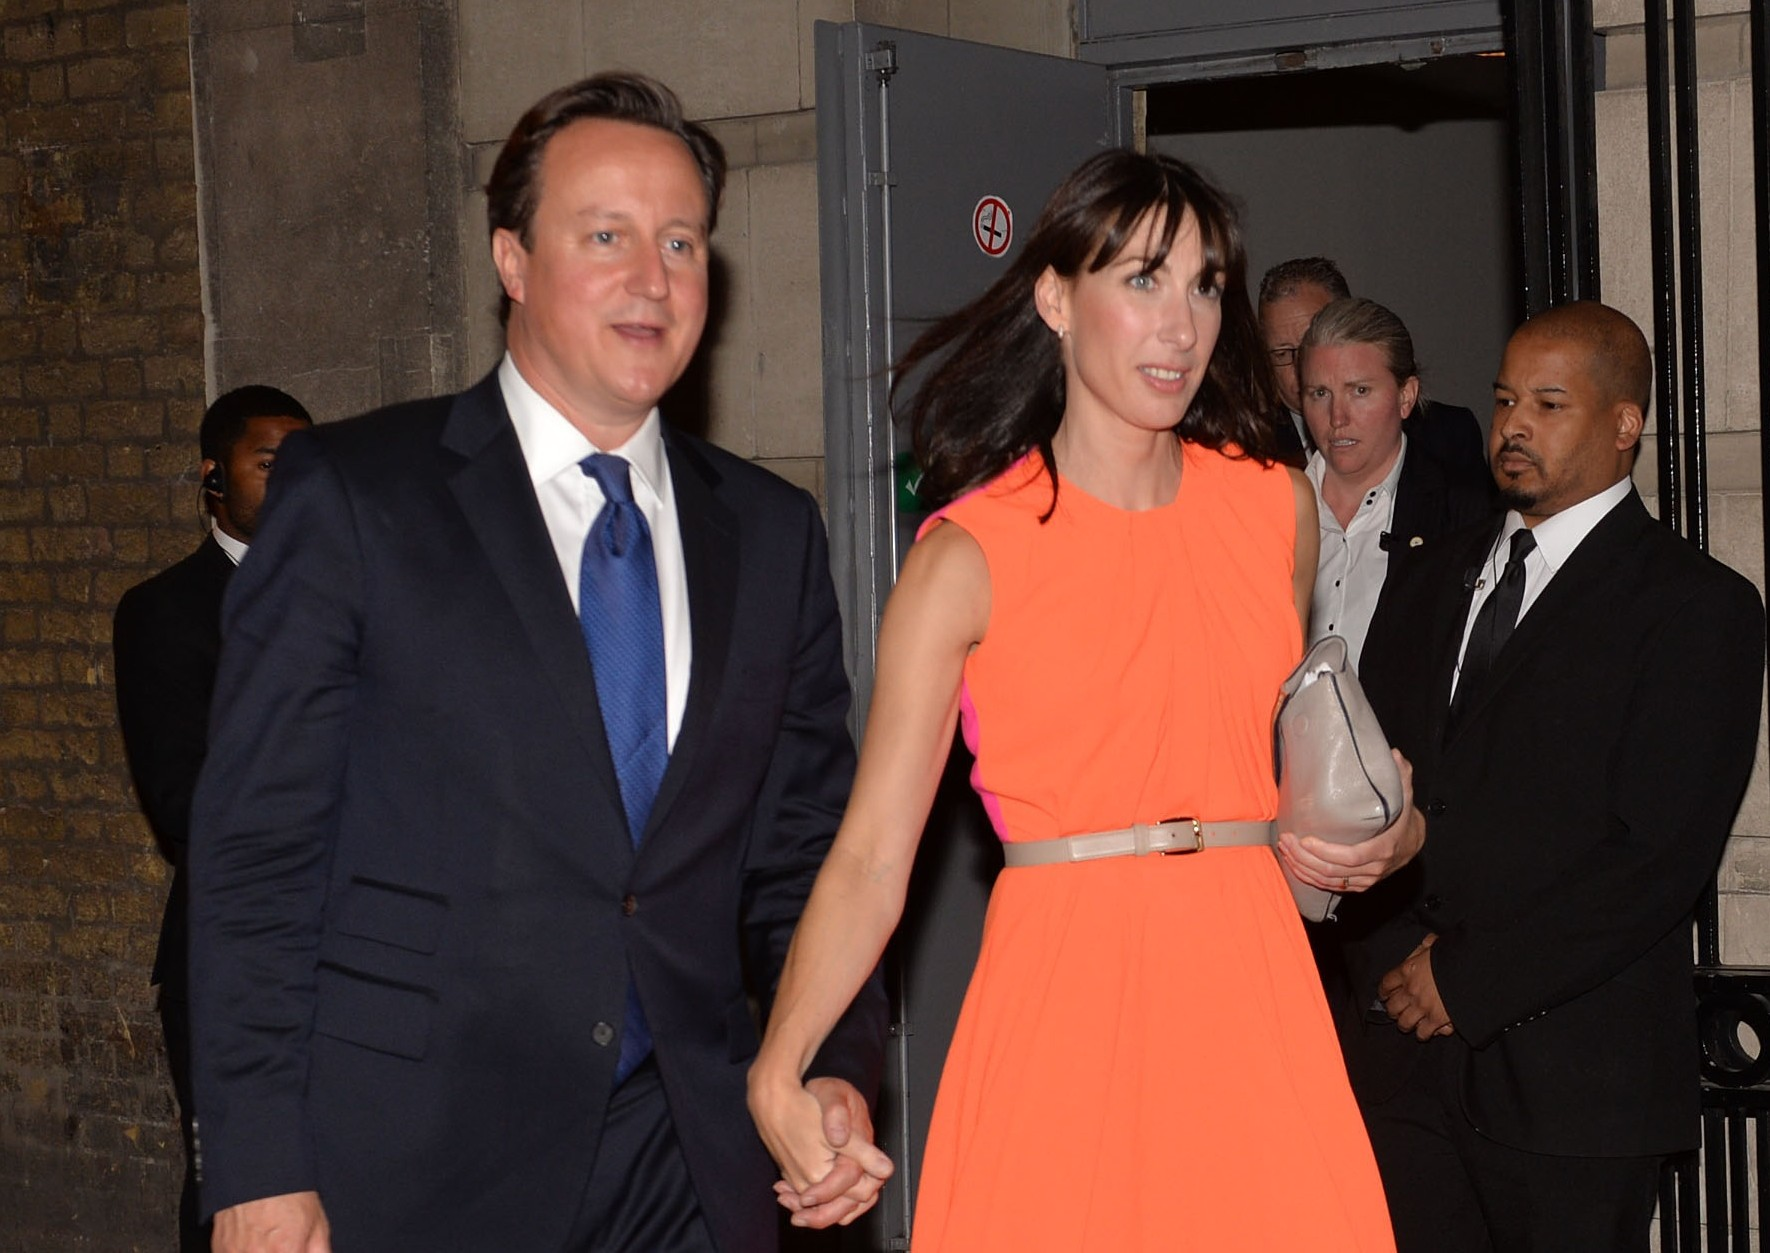 David and Samantha Cameron arrive at the 2013 Conservative Summer Party